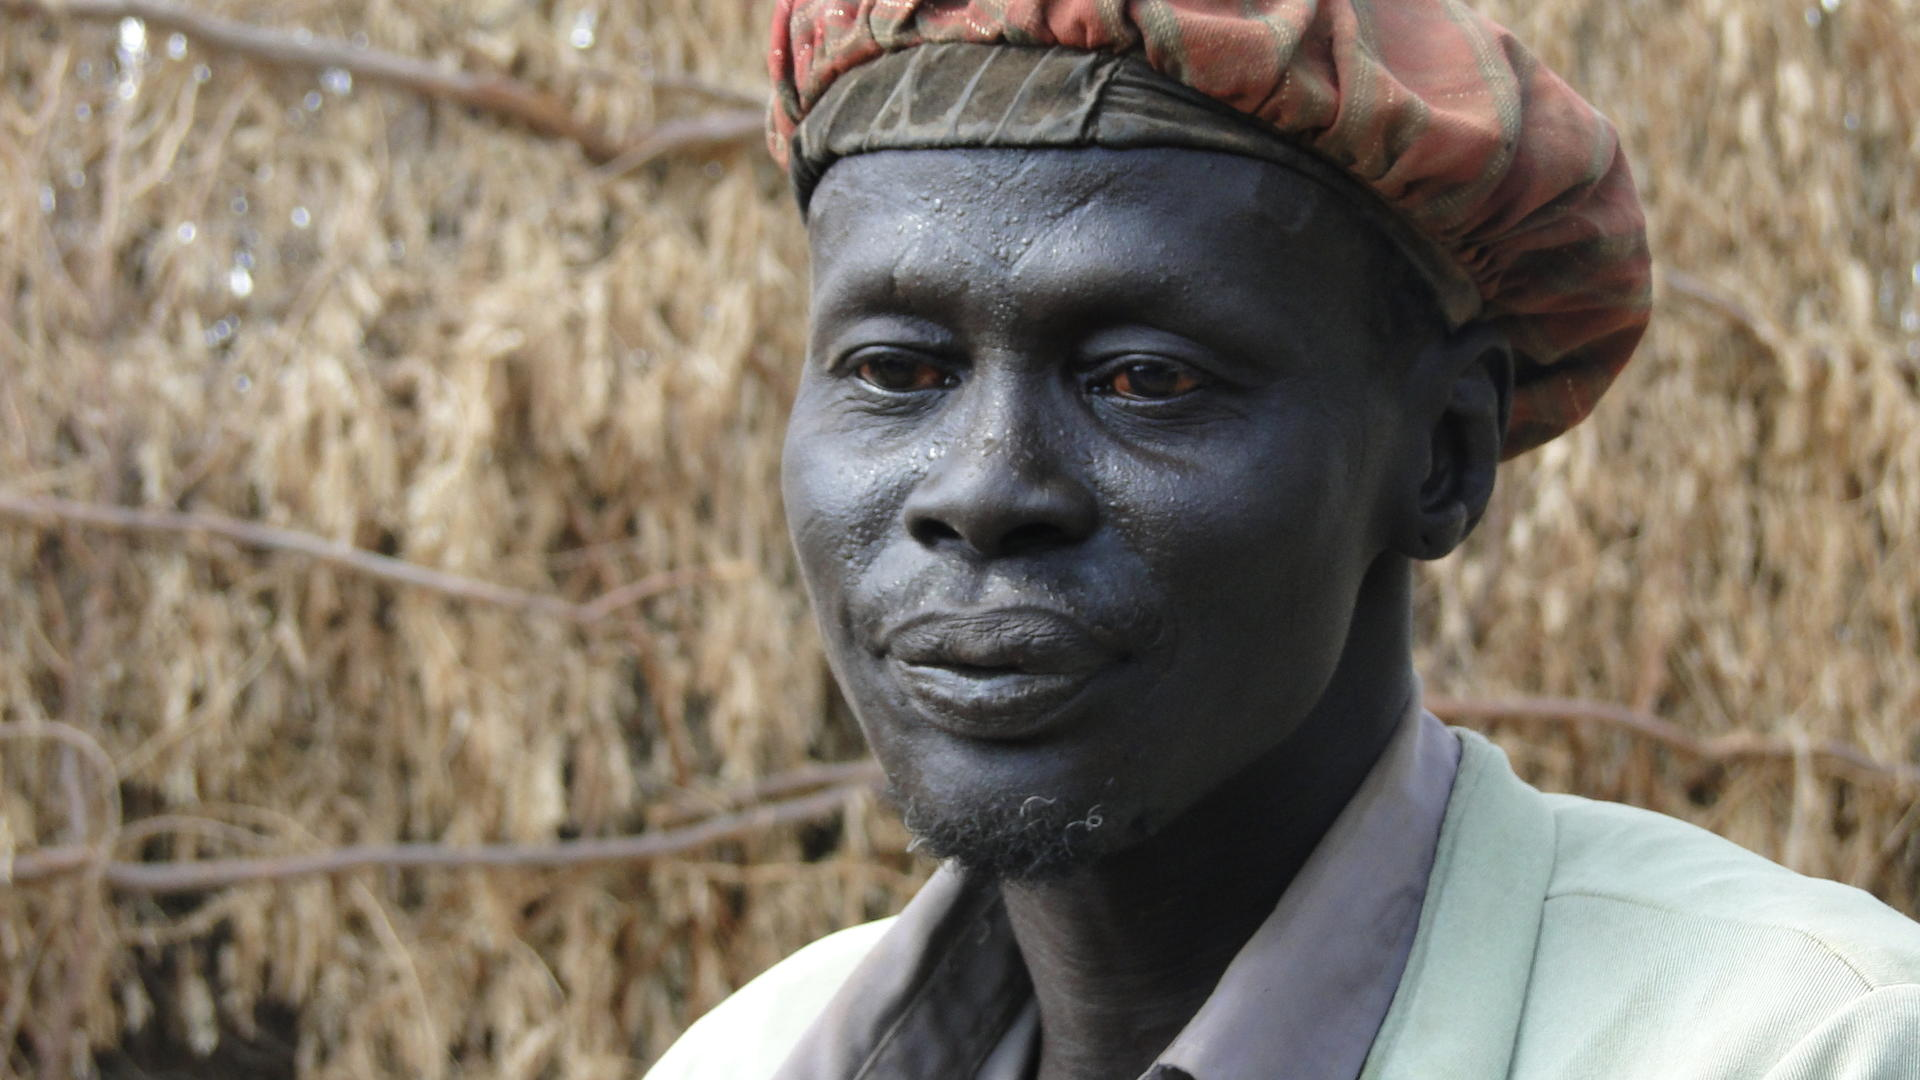 Daniel, former Sudanese solider, suffers from post-traumatic stress